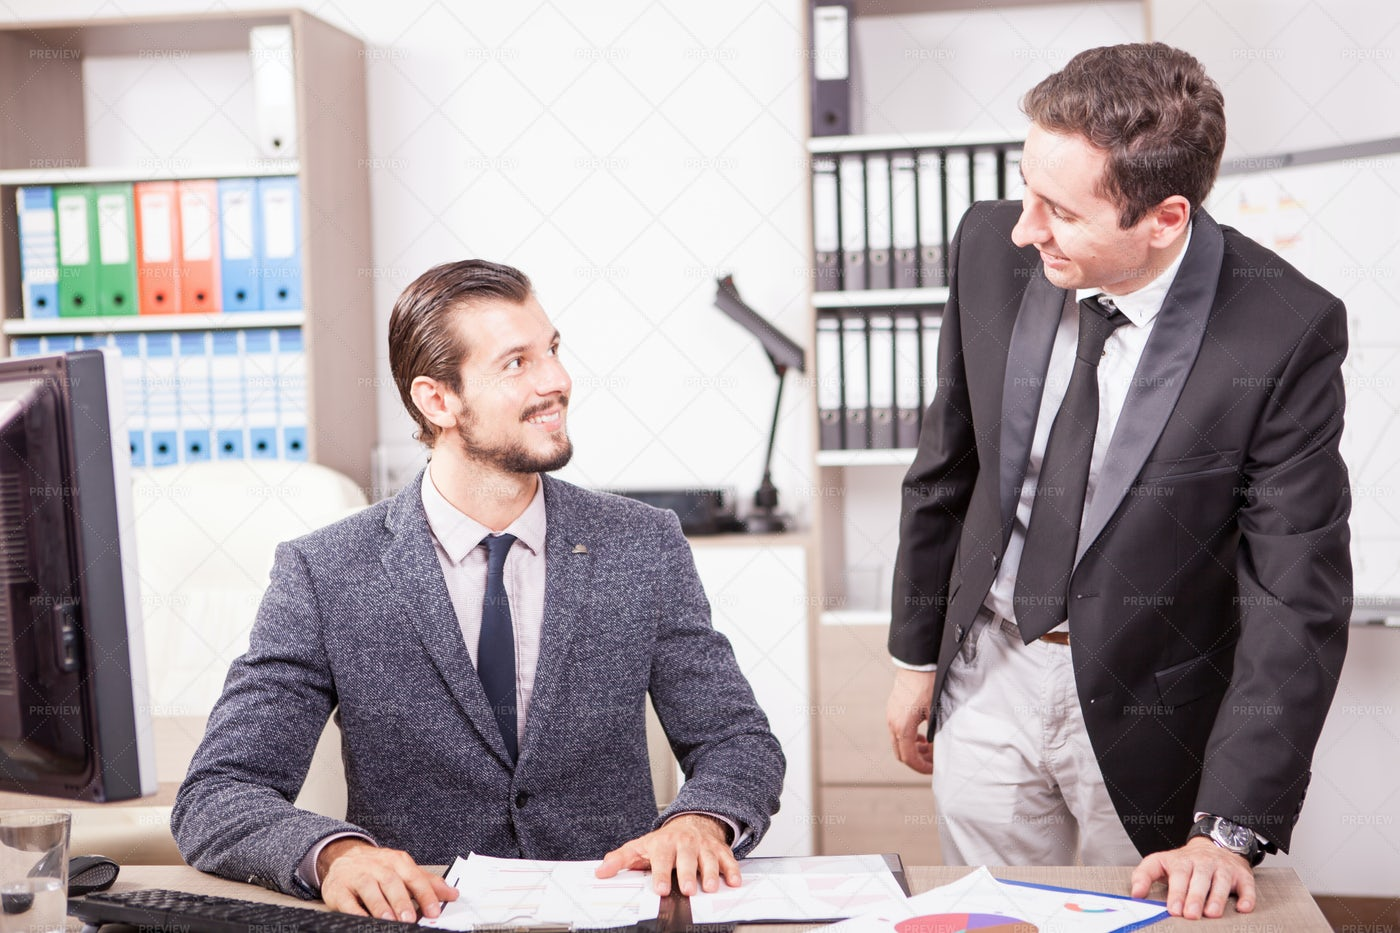 Colleagues In The Office: Stock Photos